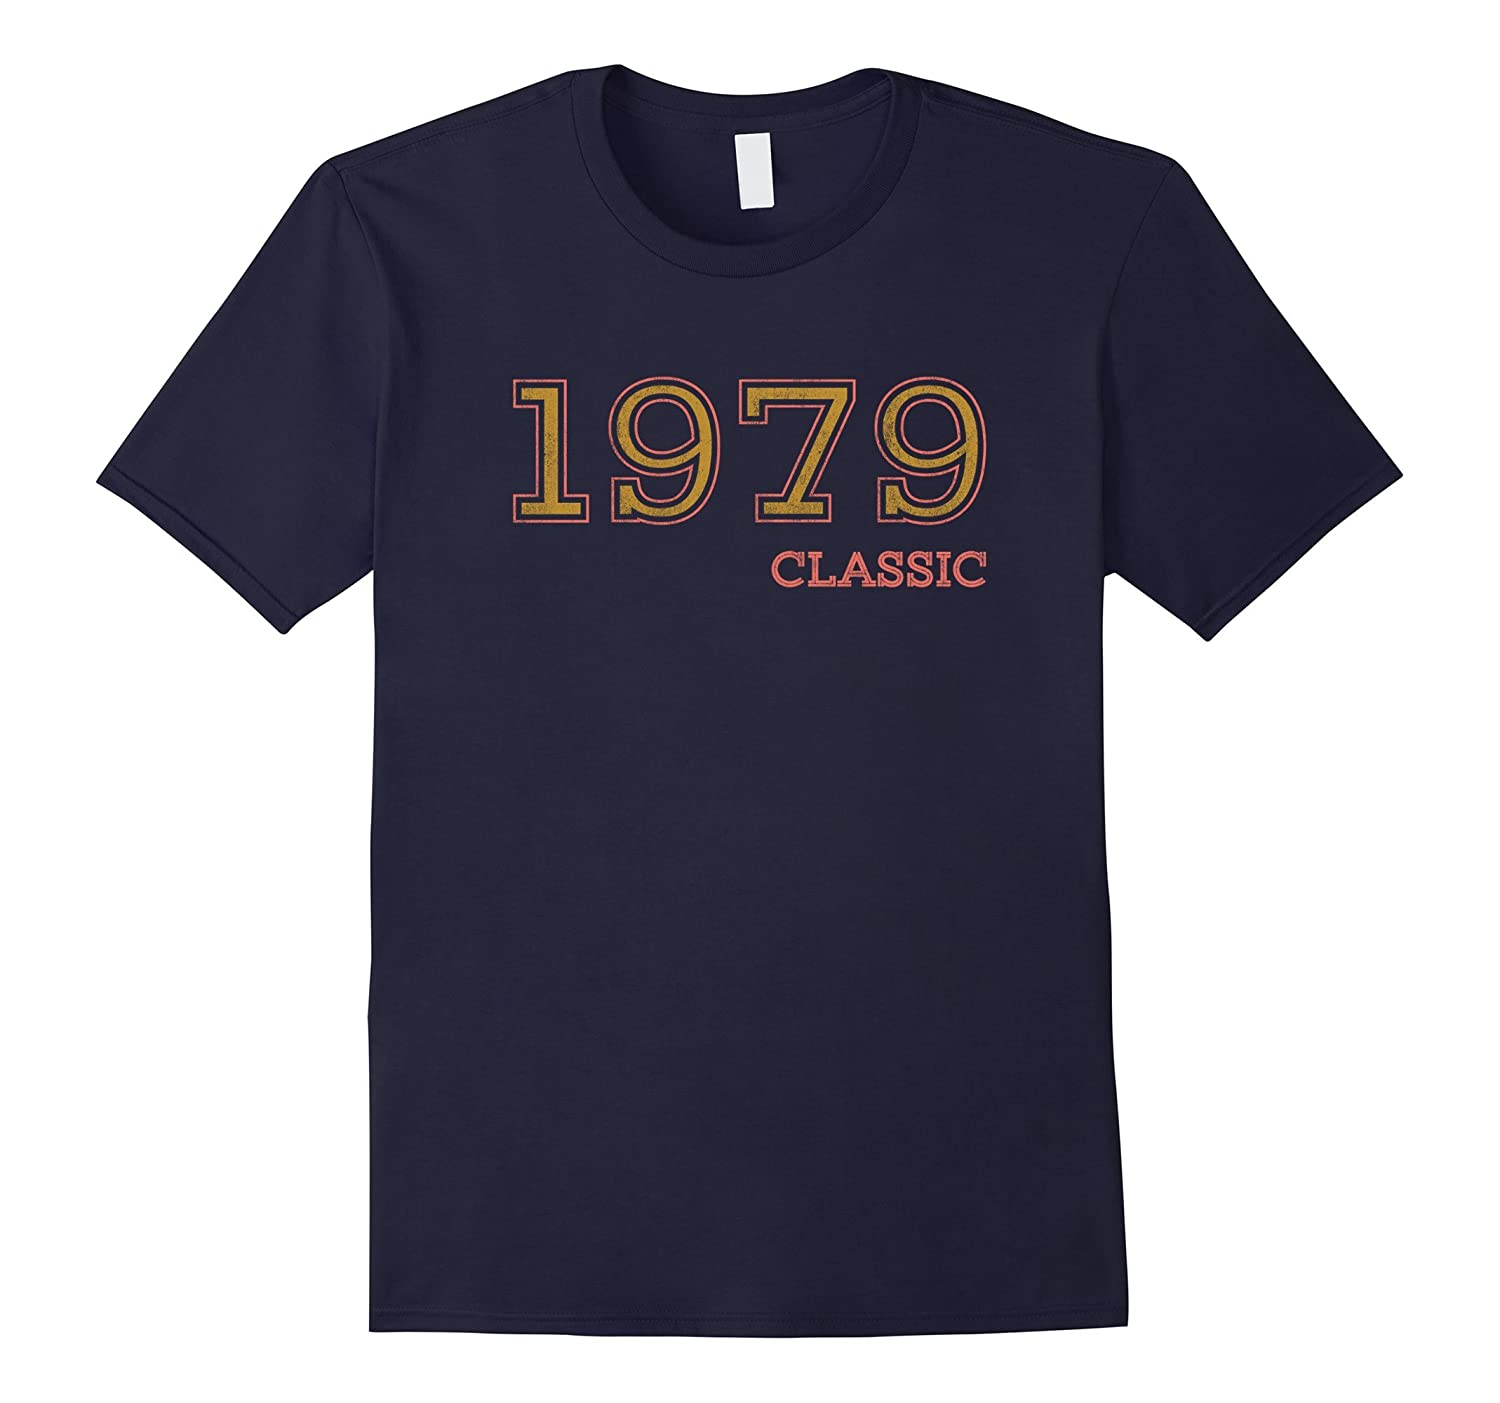 38th Birthday Funny Tshirt, Vintage 1979 Shirt, Gift Idea-ANZ